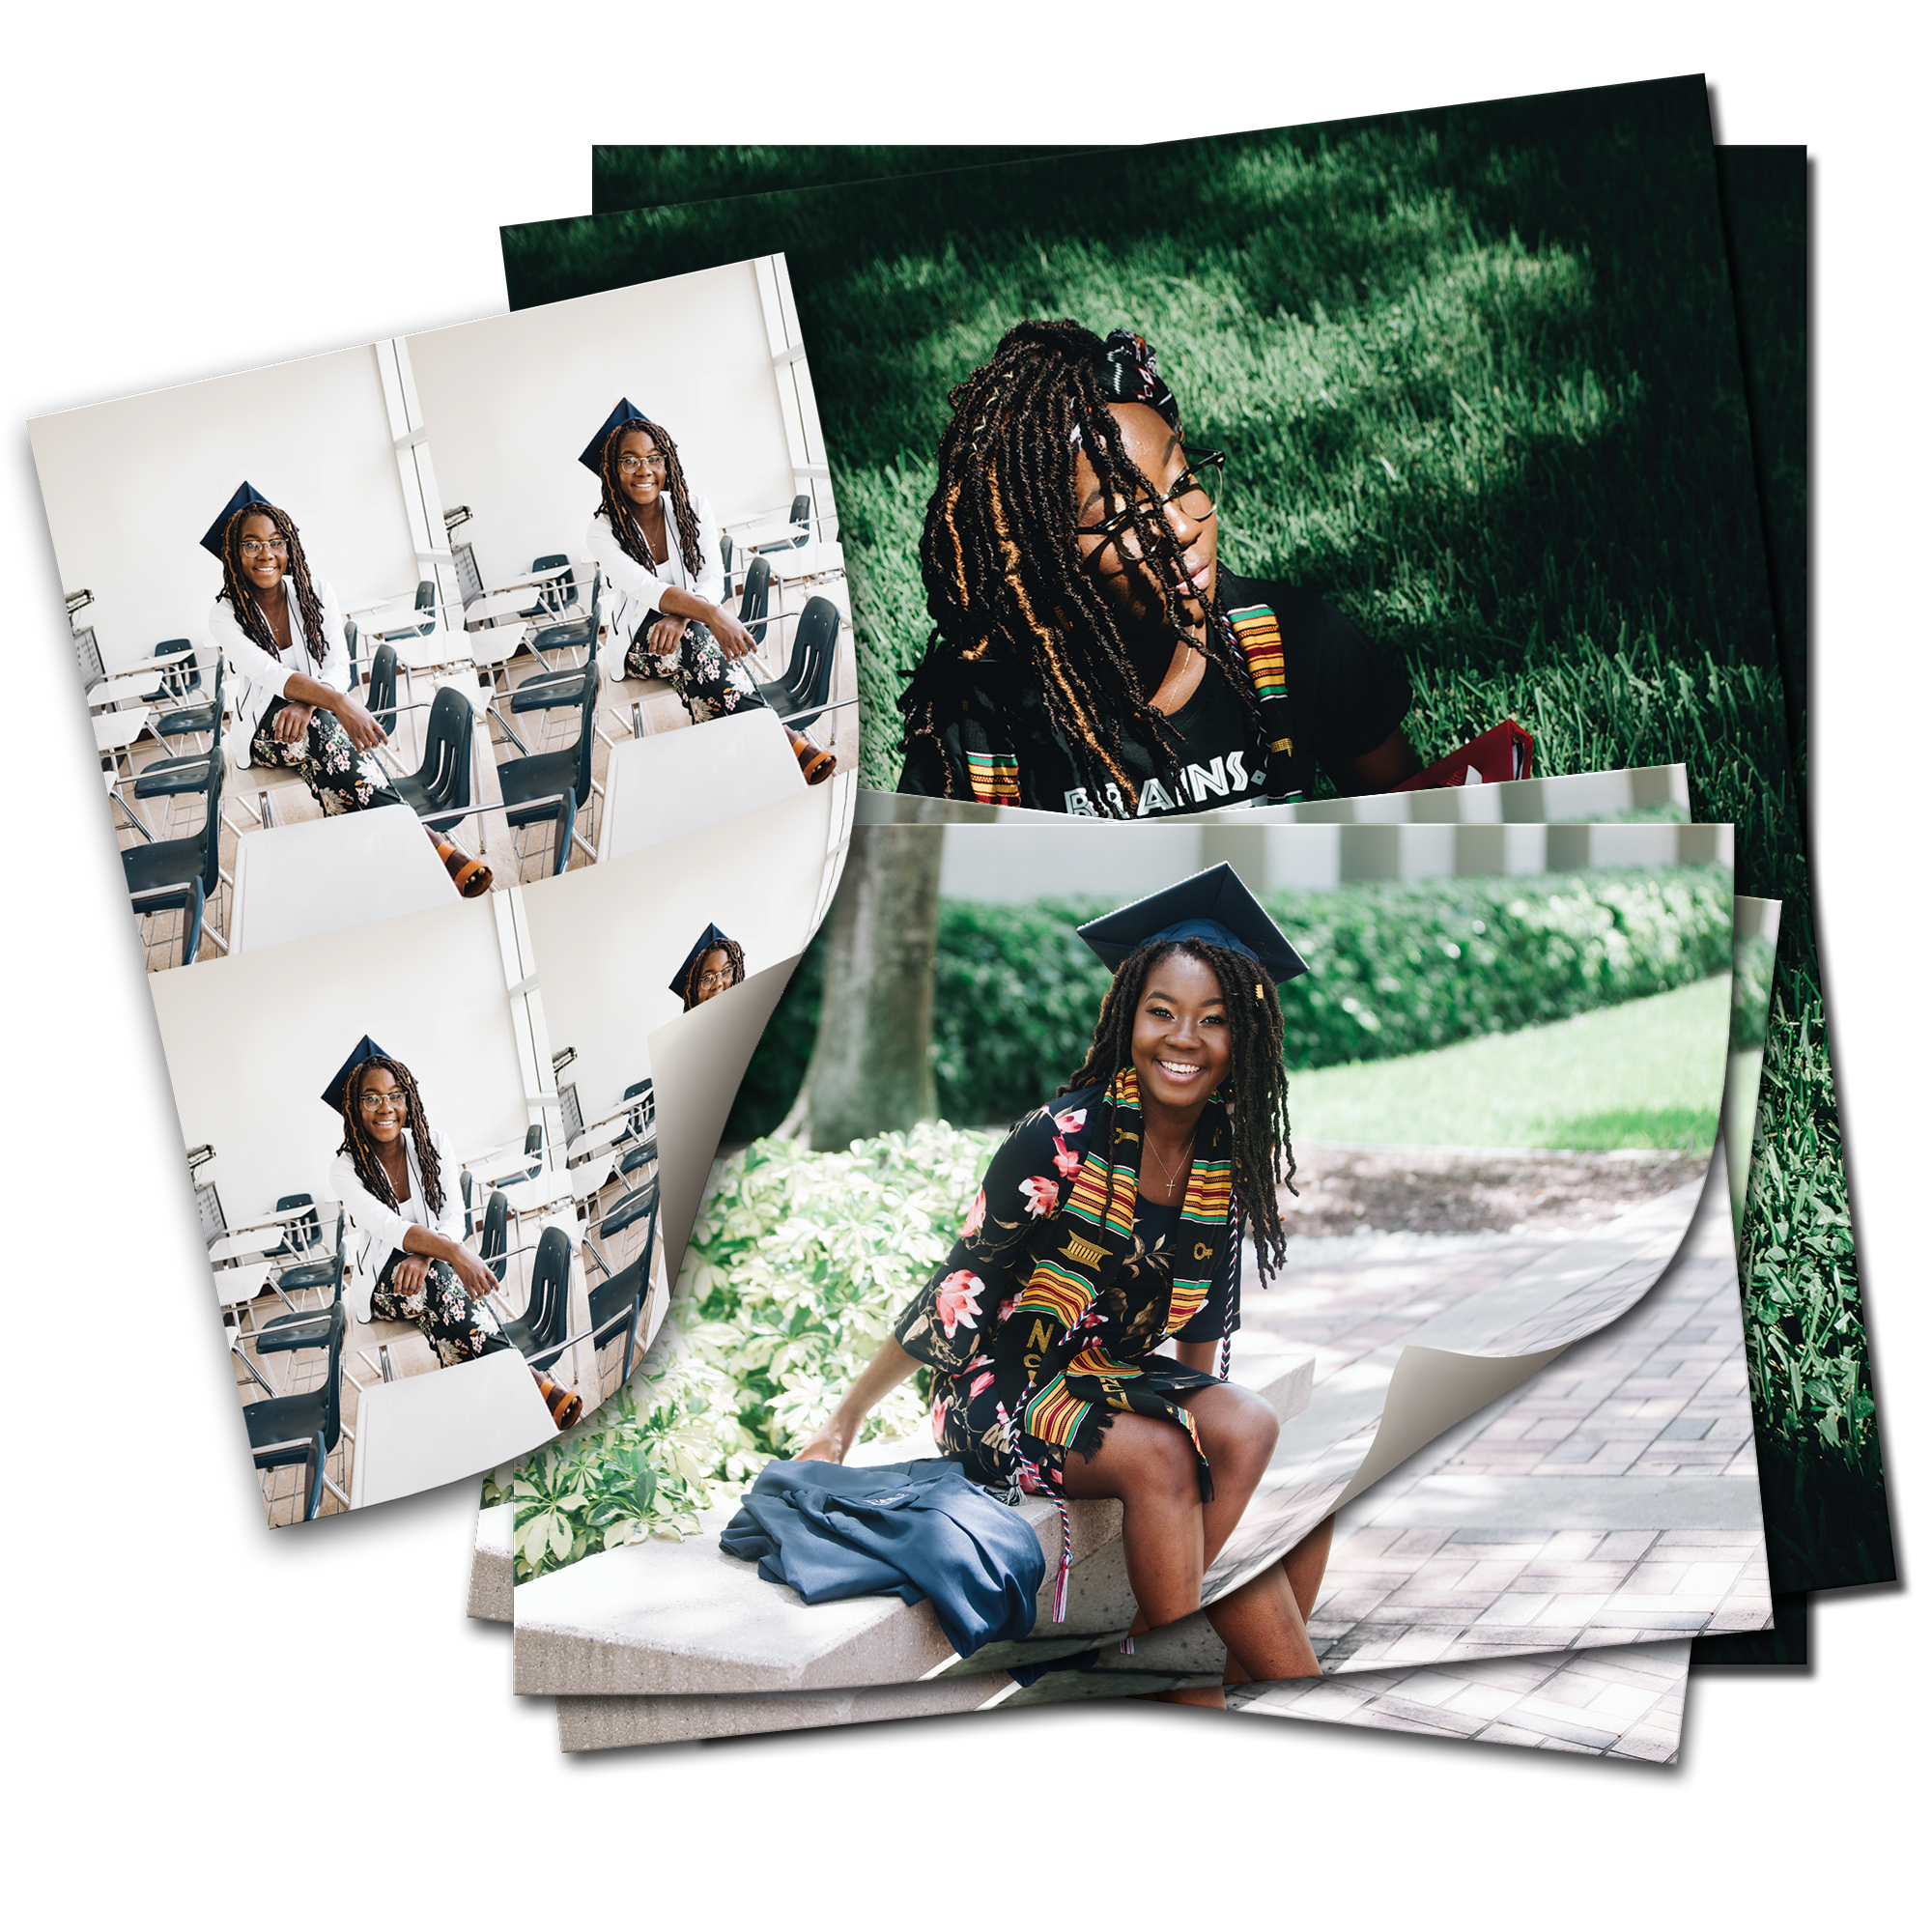 Package #2 Prints: (2) - 8 x 10s, (3) - 5x7s, (4) - Wallet